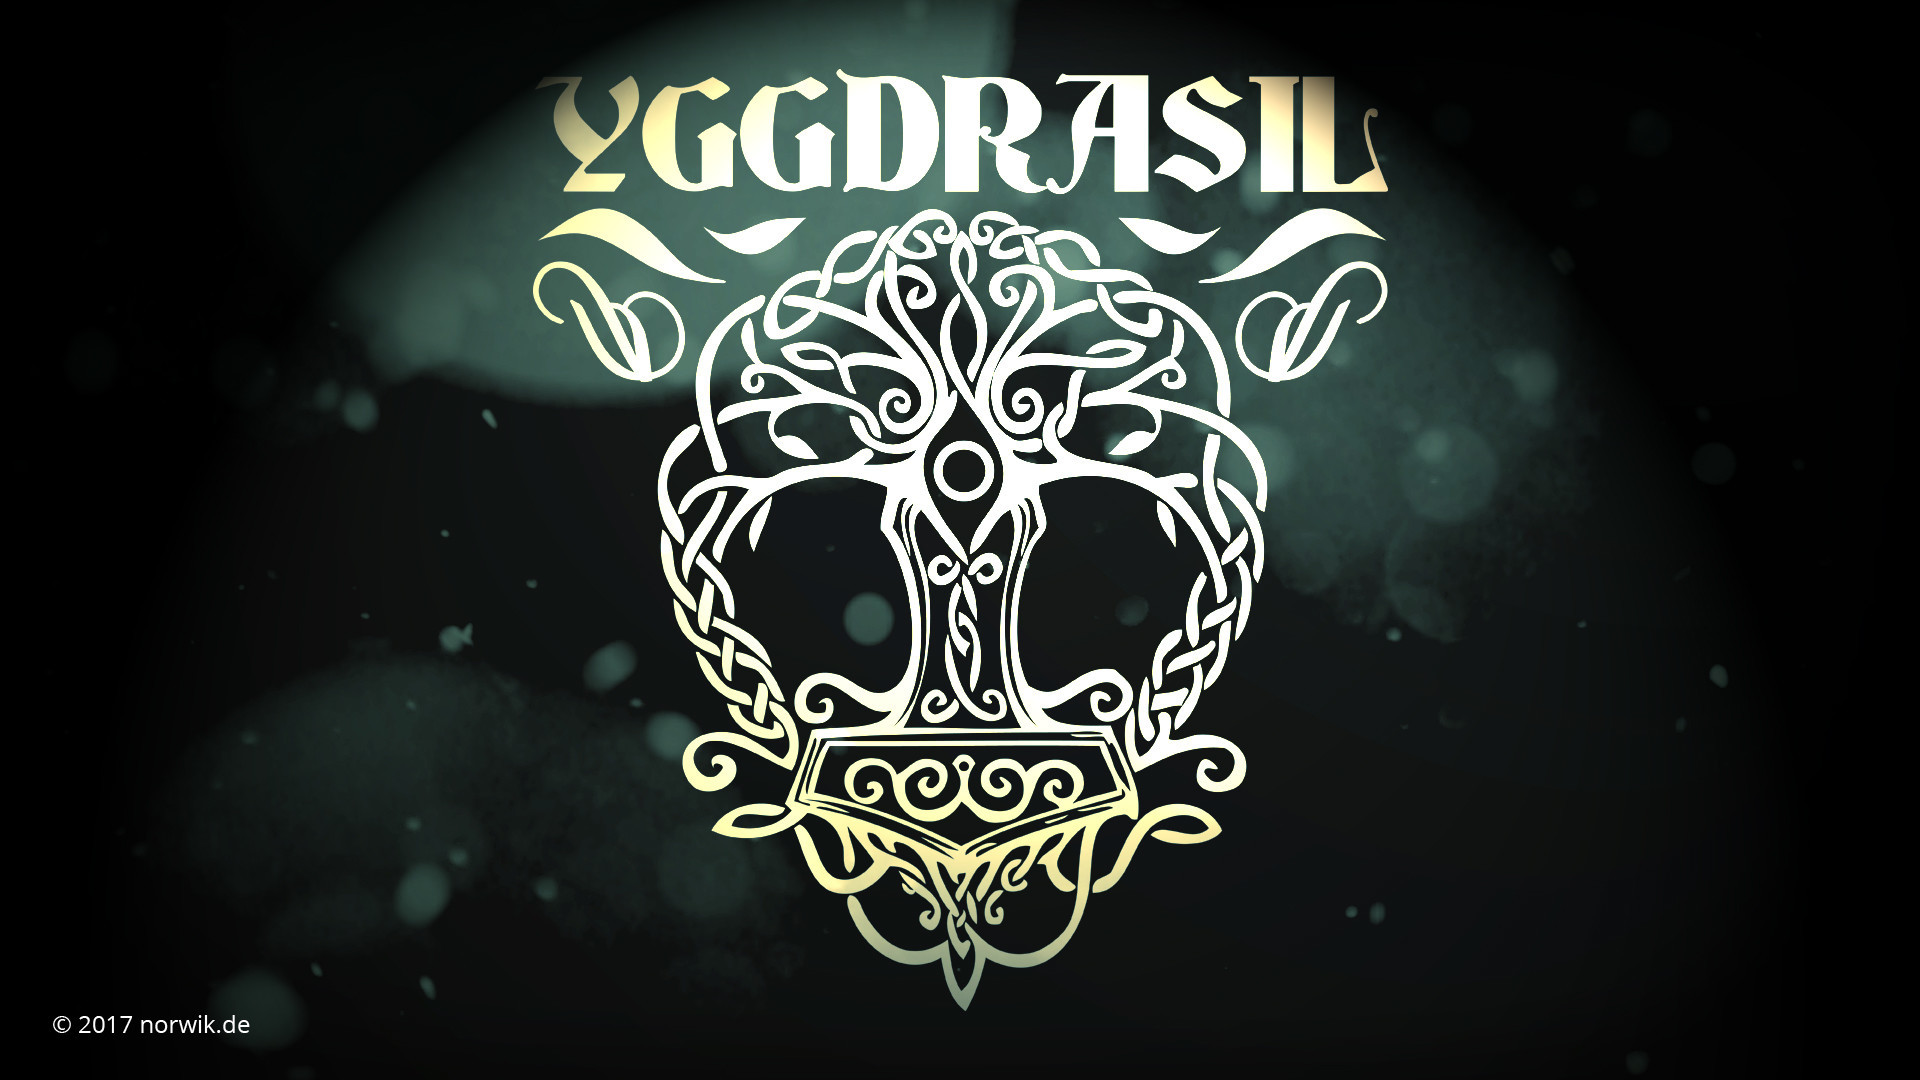 Res: 1920x1080, Yggdrasil latest Wallpapers